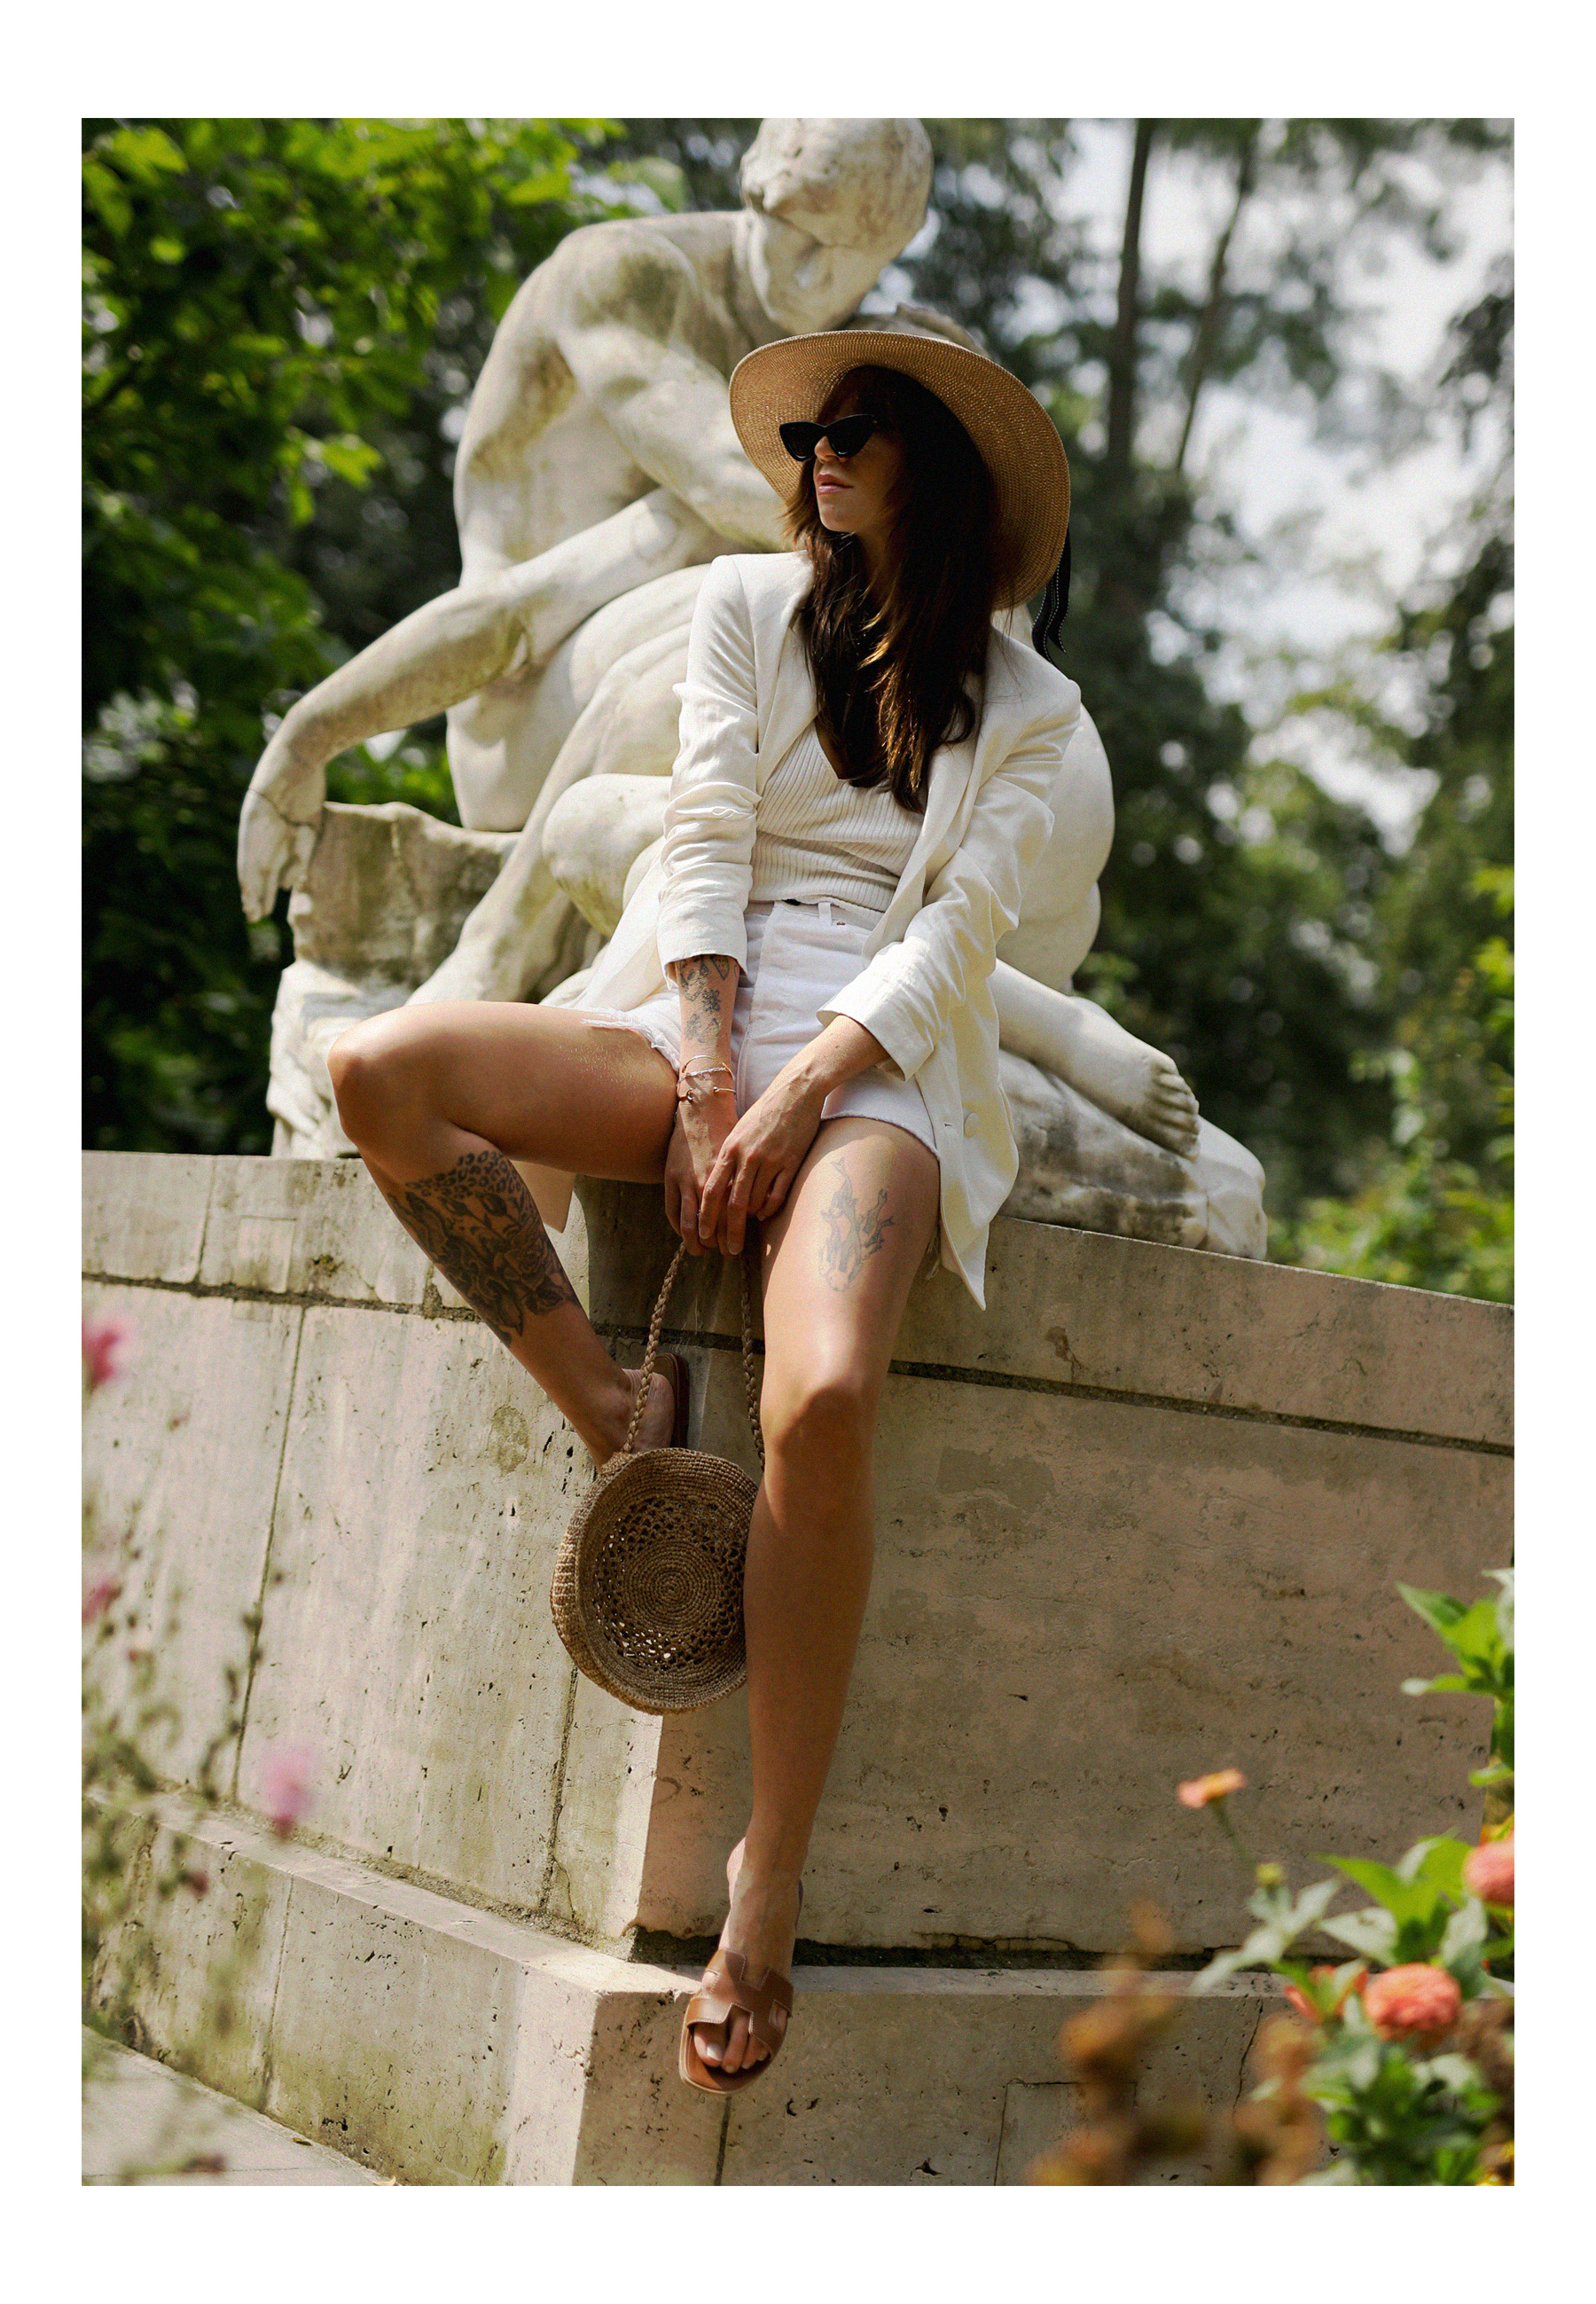 all white & other stories shorts blazer straw hat summer bag rouje hermes oran sandals statue marble dusseldorf düsseldorf dus art artist artsy fashionblogger modeblog jane birkin jeanne damas outfit mode inspiration look seventies ricarda schernus 1